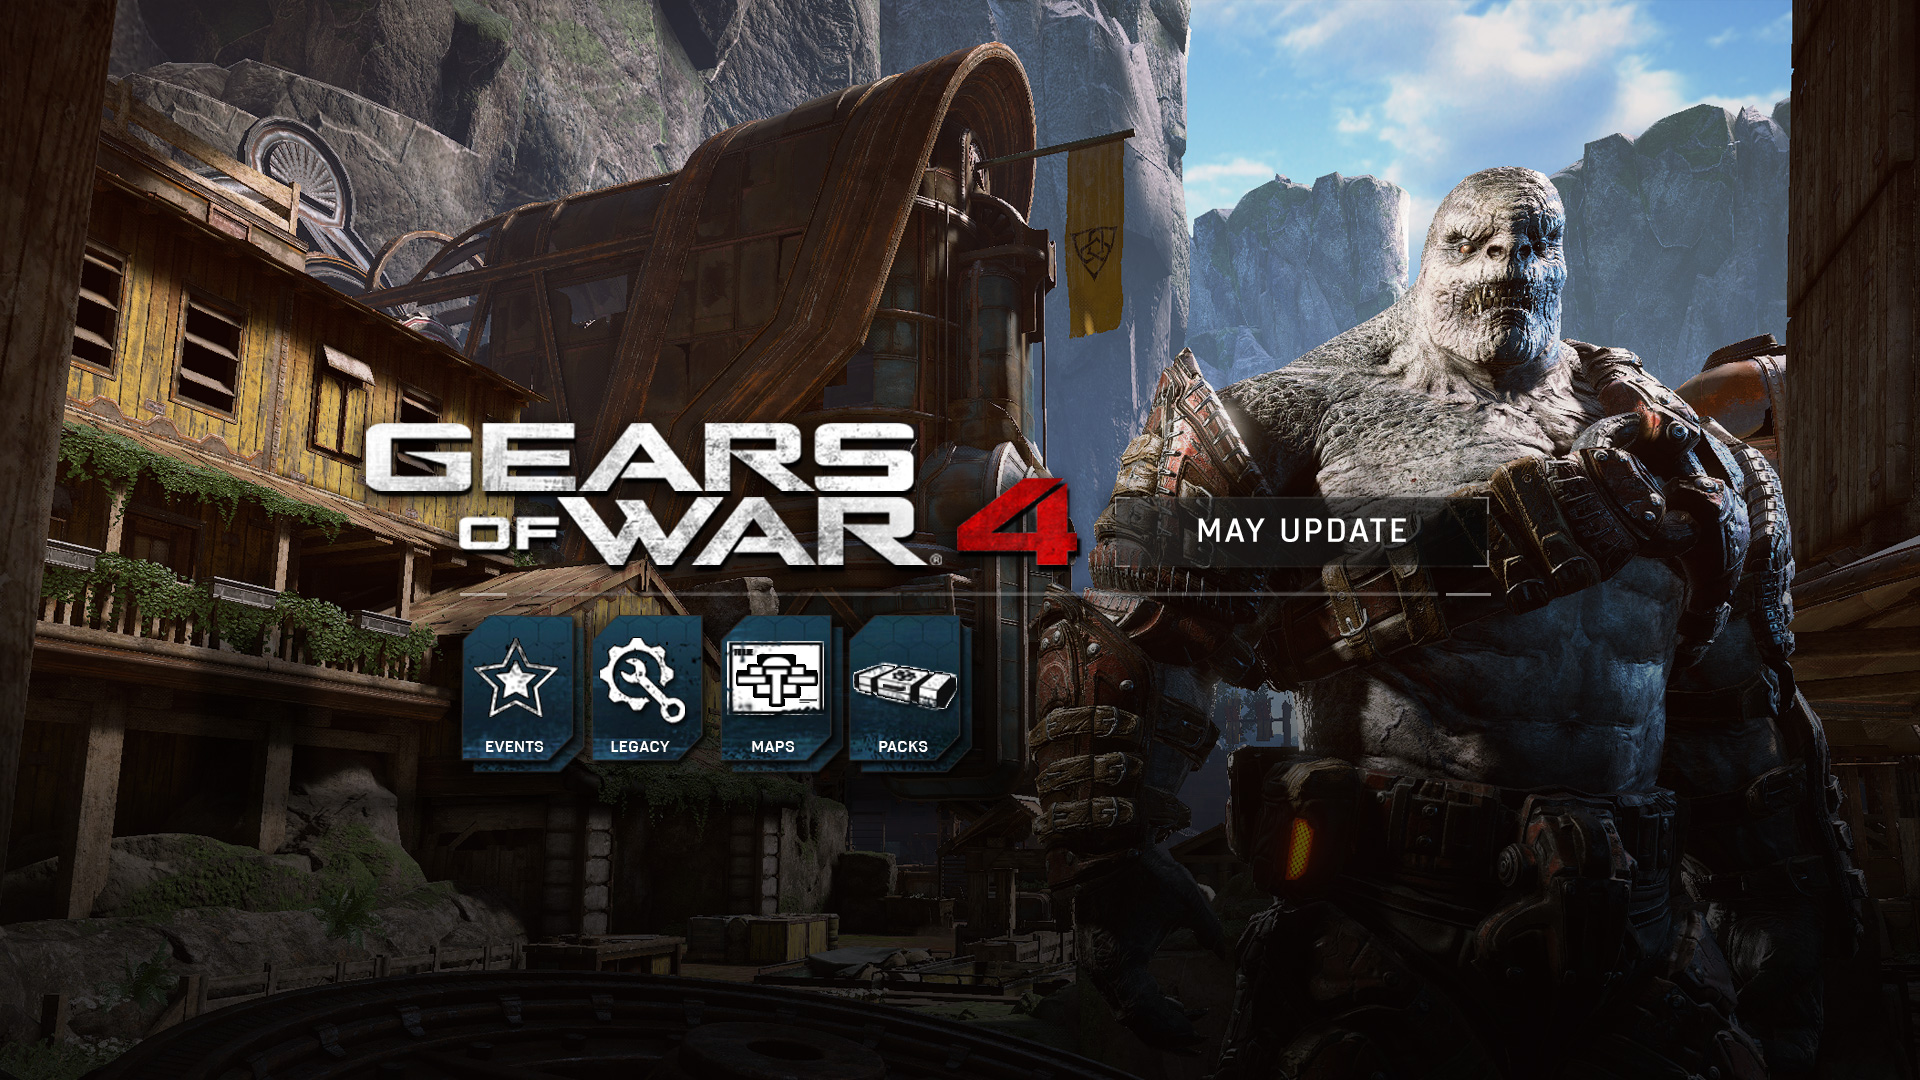 Gears of War 4 - May Update | Community | Gears of War ... on modern warfare 2 map list, left 4 dead map list, wolfenstein map list, call of duty black ops 2 map list, battlefield bad company 2 map list, titanfall map list, just cause 2 map list, rainbow six vegas map list, team fortress 2 map list, halo map list, battlefield 3 map list, modern warfare 3 map list, doom 3 map list, minecraft map list, borderlands 2 map list, red orchestra 2 map list, cod black ops map list, destiny map list, metal gear solid map list, gears of war 1 map list,